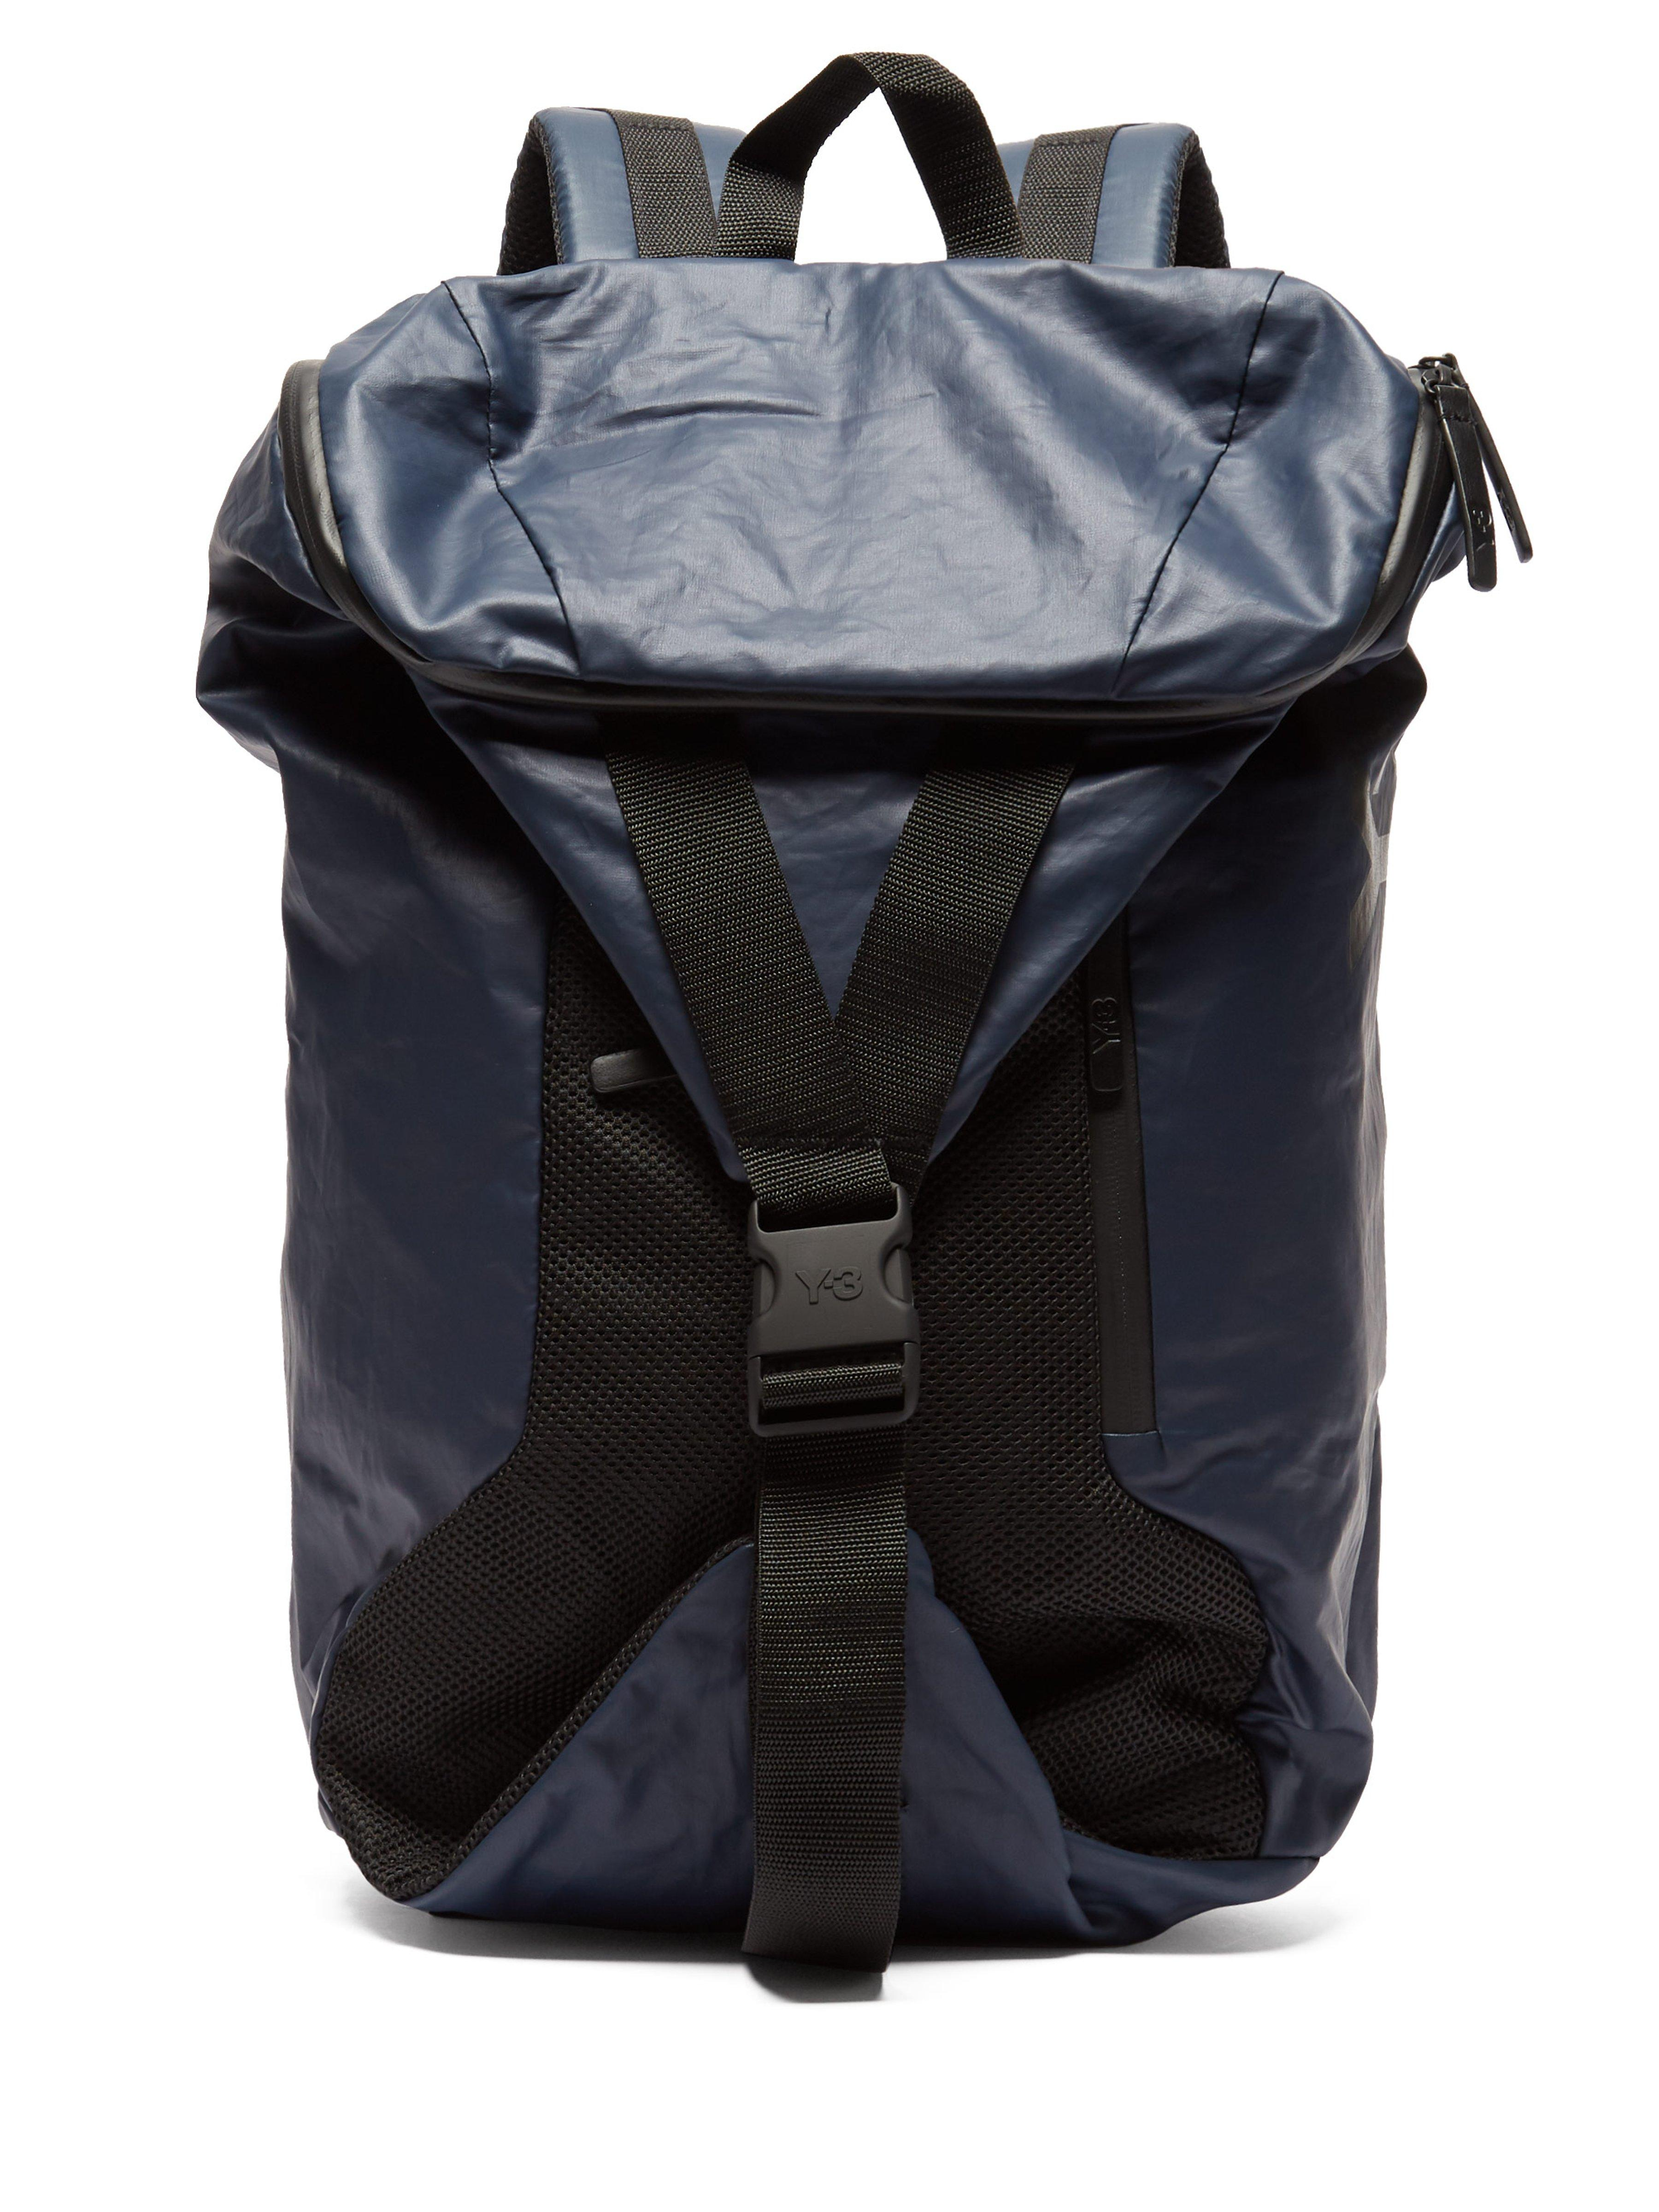 Y-3 Base Technical Backpack in Black for Men - Lyst 77cfb254be